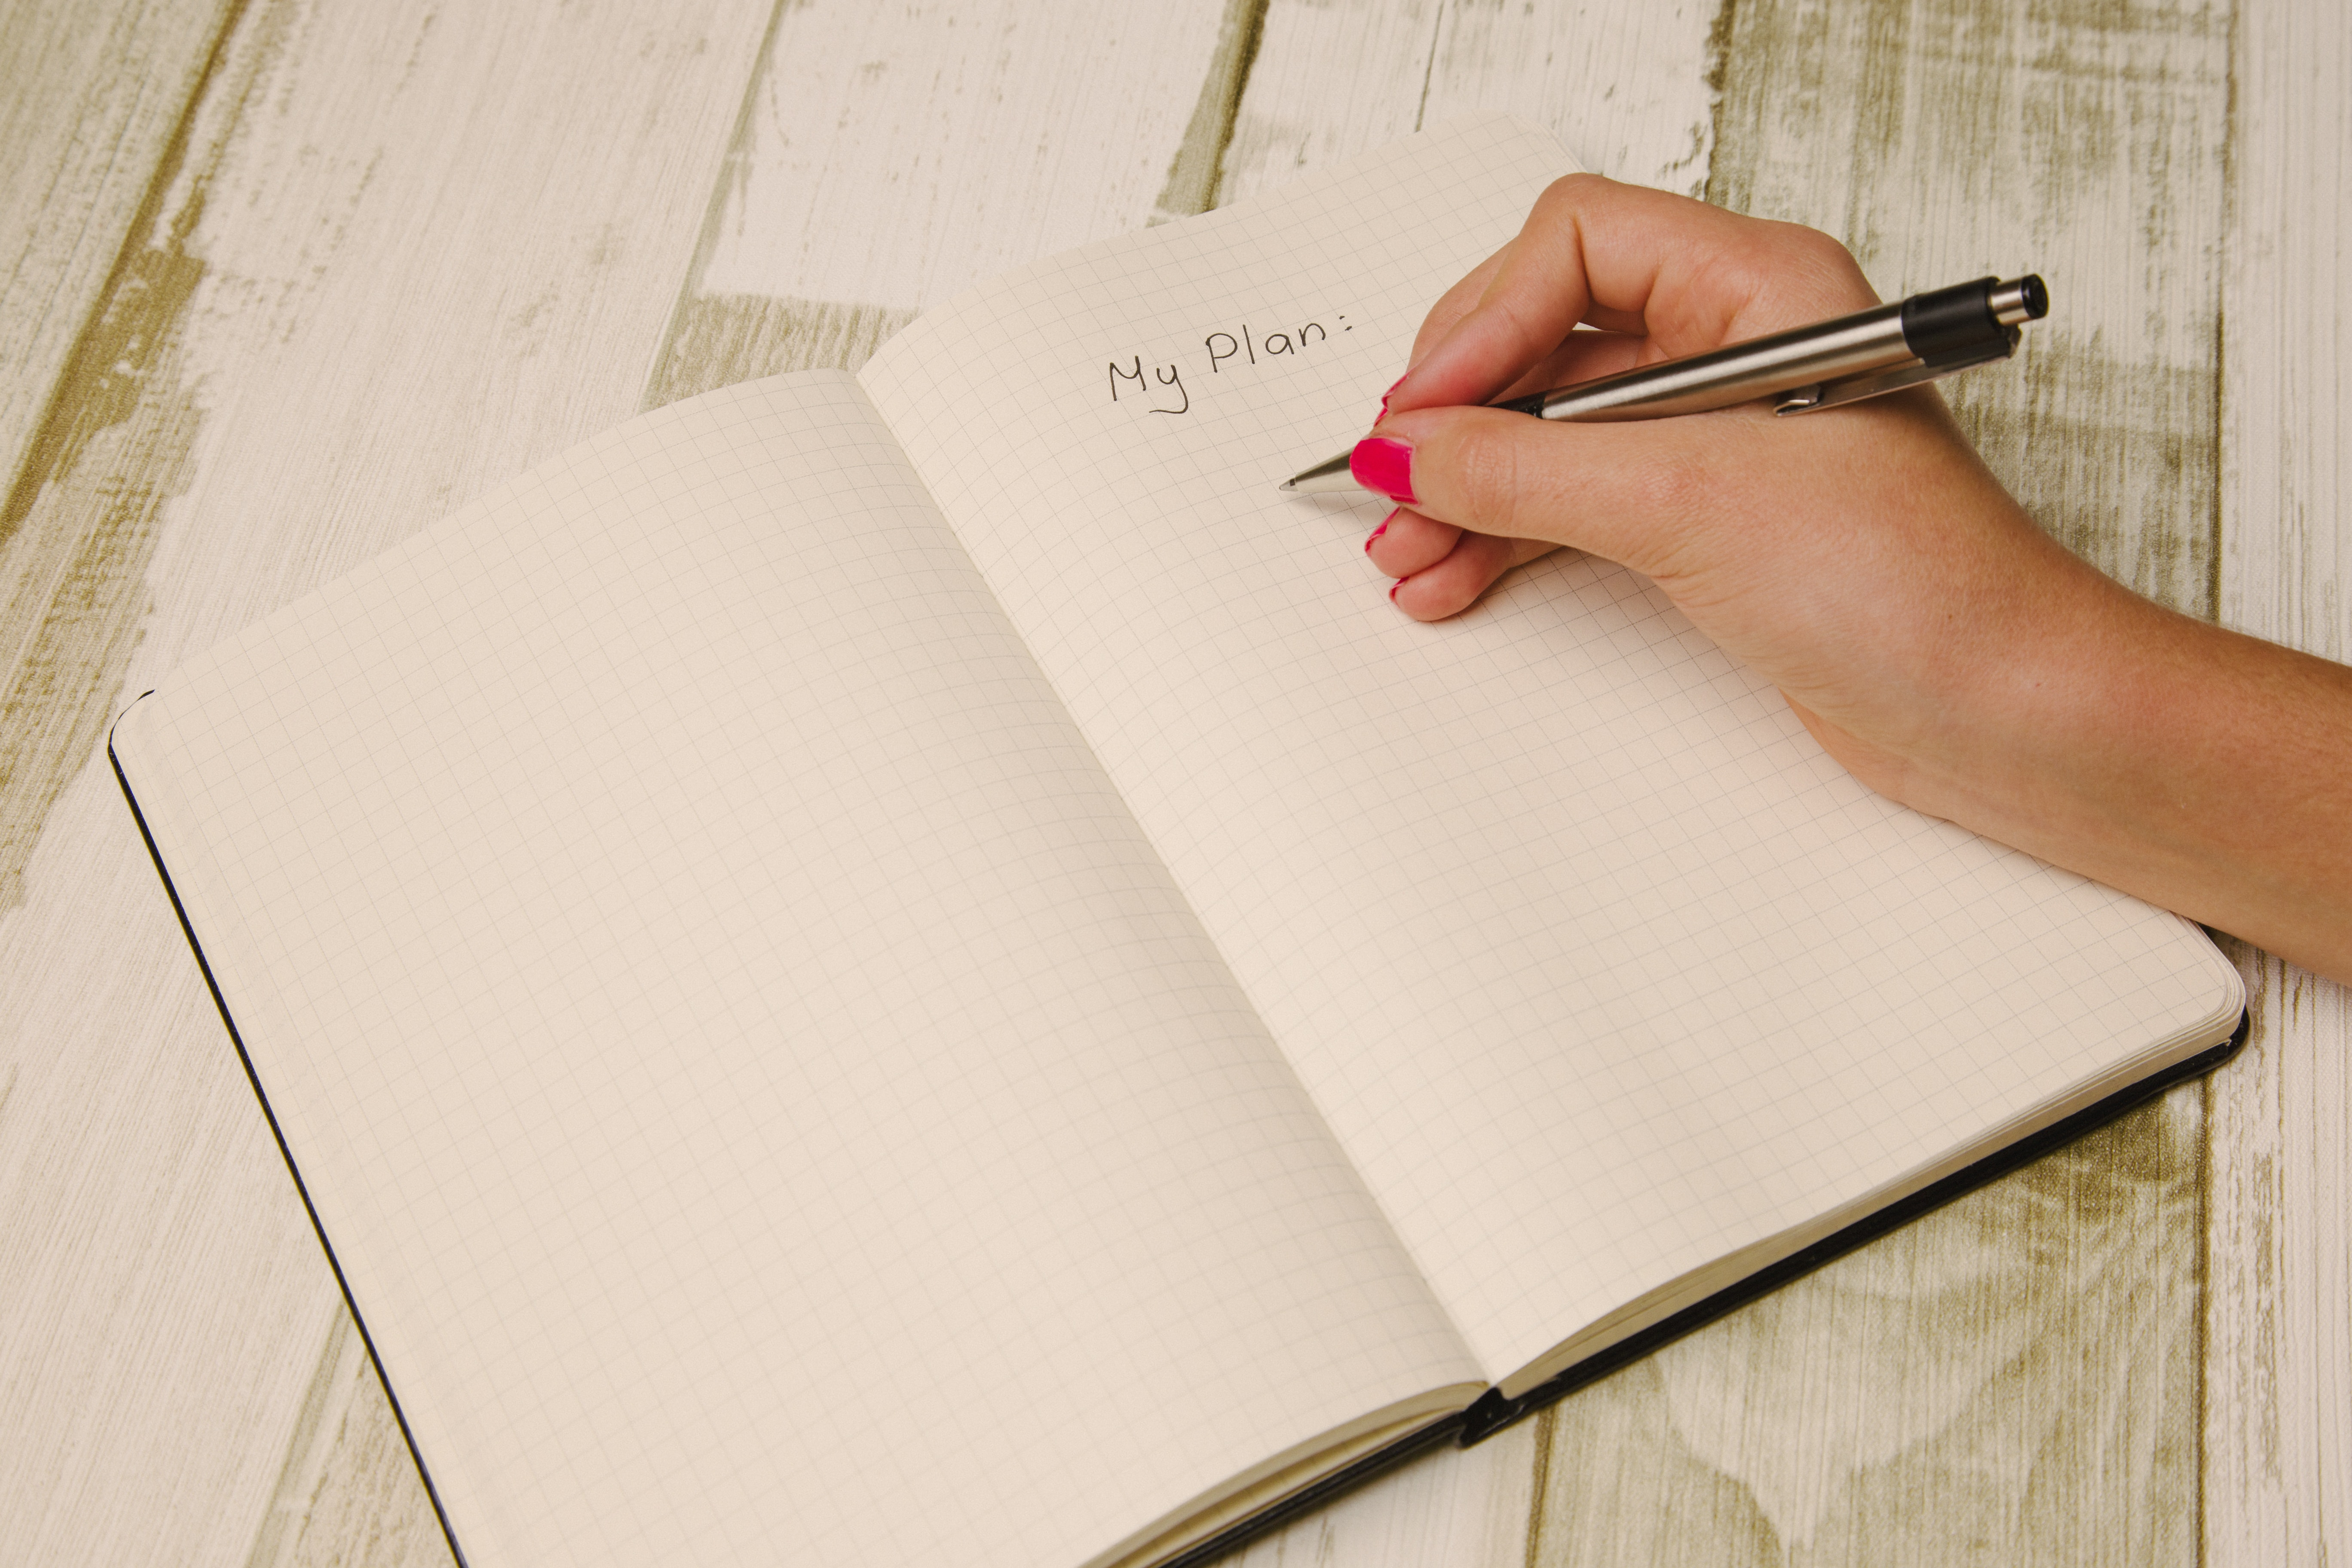 female hand writes a plan in a gridded journal